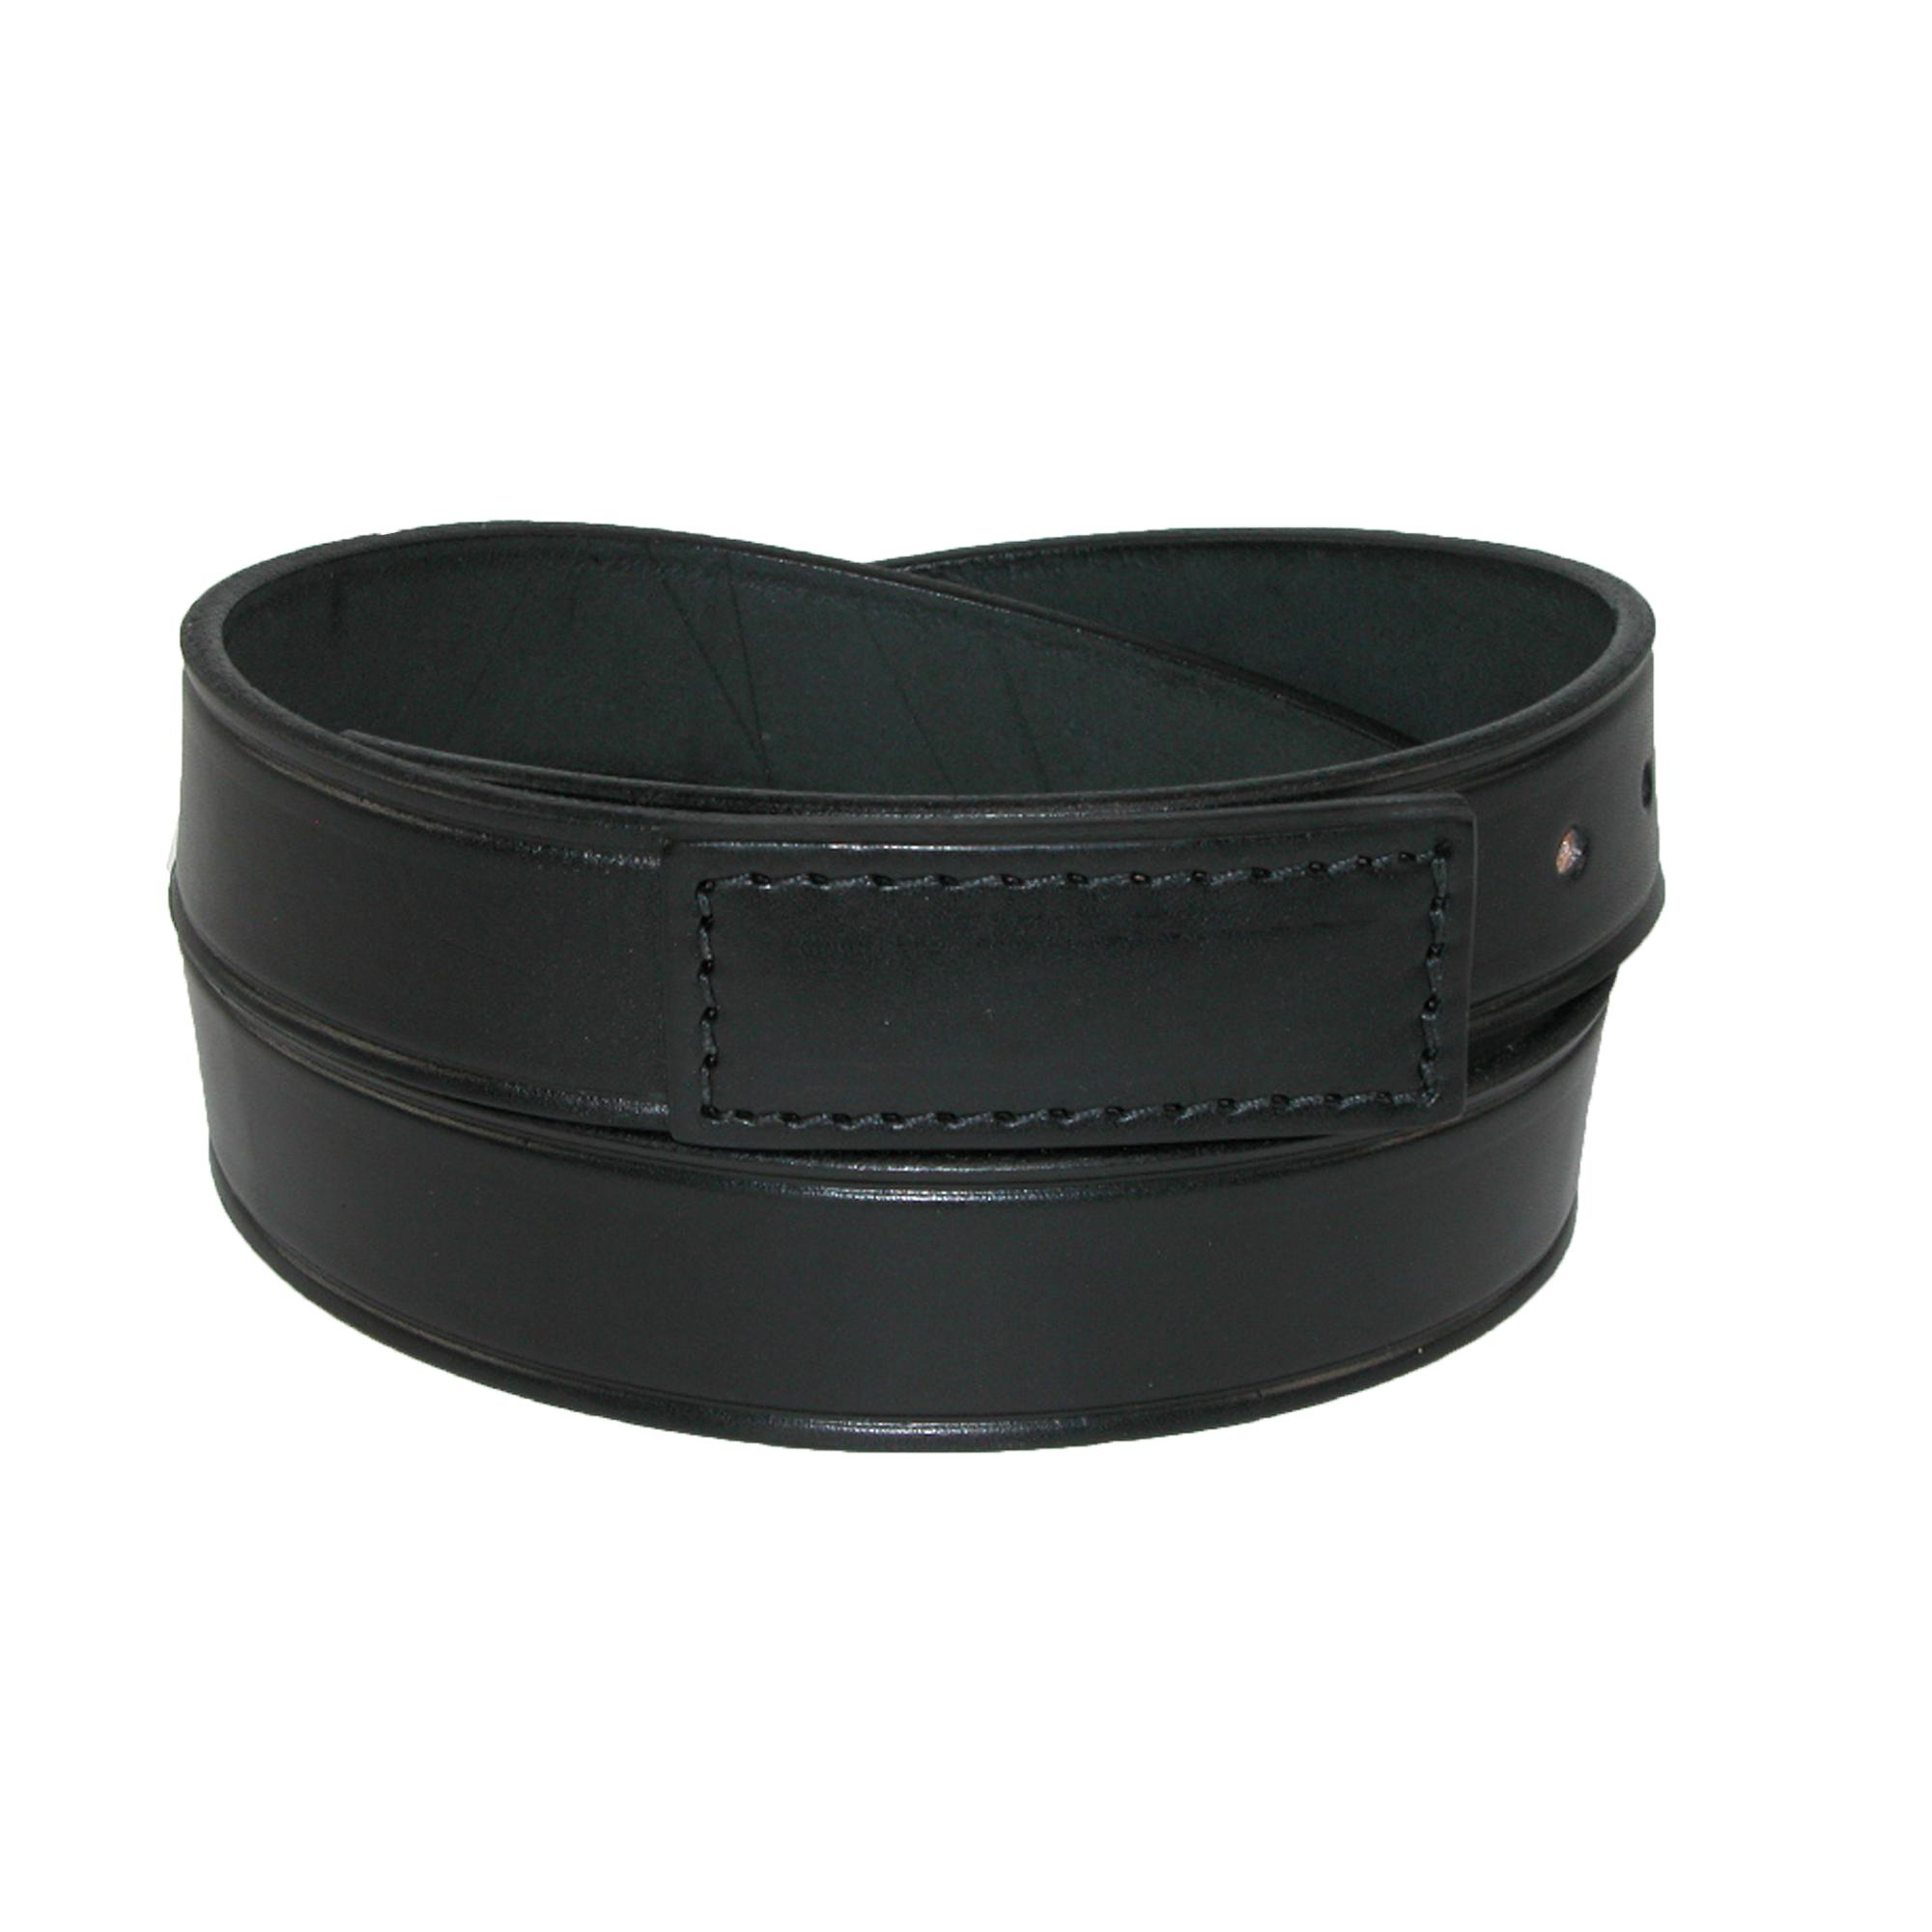 Boston_Leather_Mens_Leather_Movers_&_Mechanics_No_Scratch_Work_Belt_